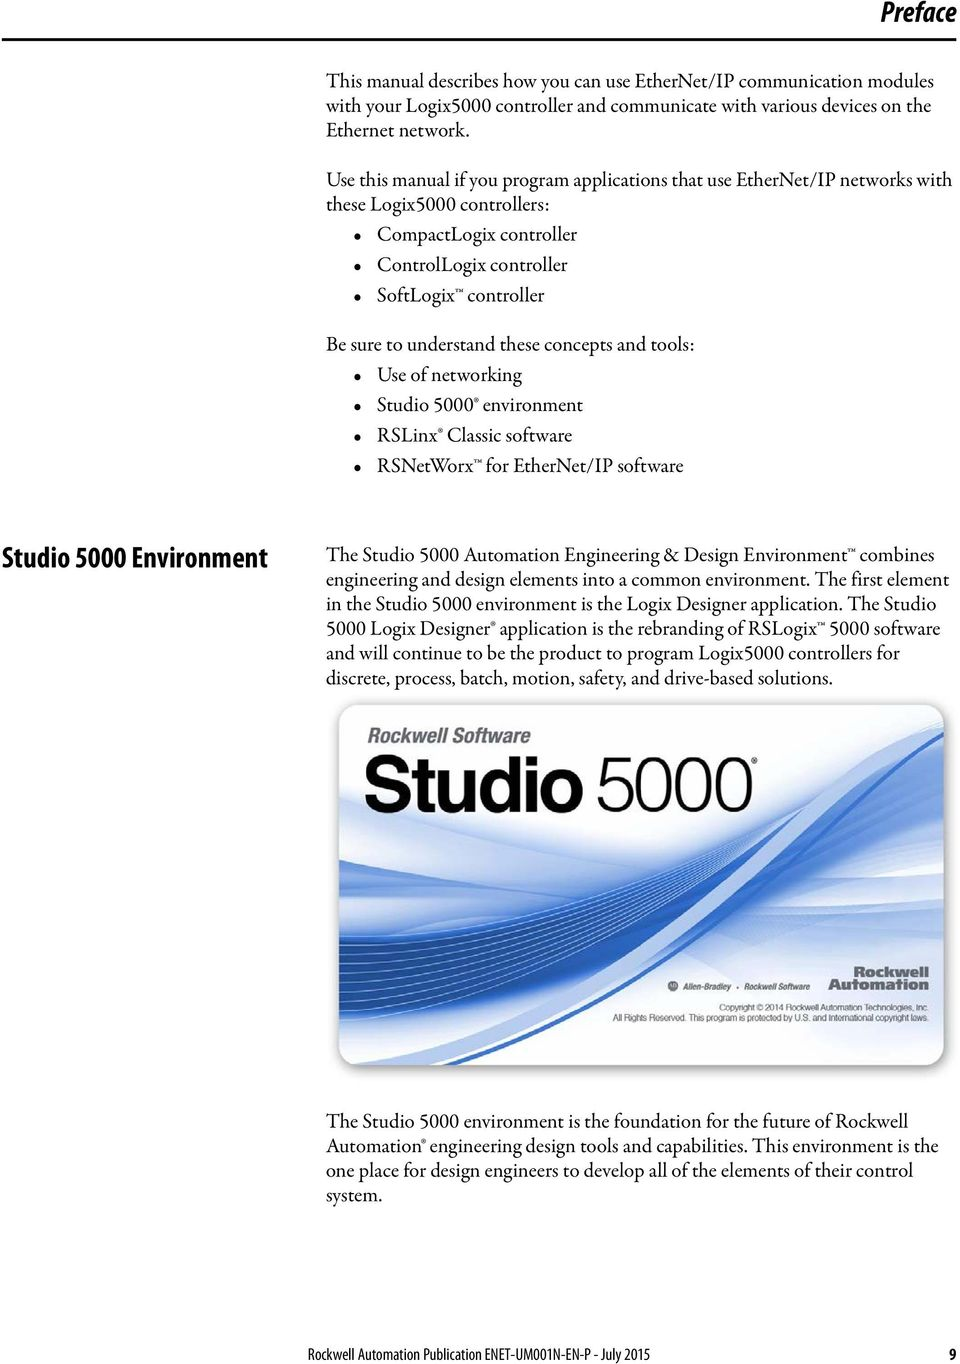 these concepts and tools: Use of networking Studio 5000 environment RSLinx Classic software RSNetWorx for EtherNet/IP software Studio 5000 Environment The Studio 5000 Automation Engineering & Design